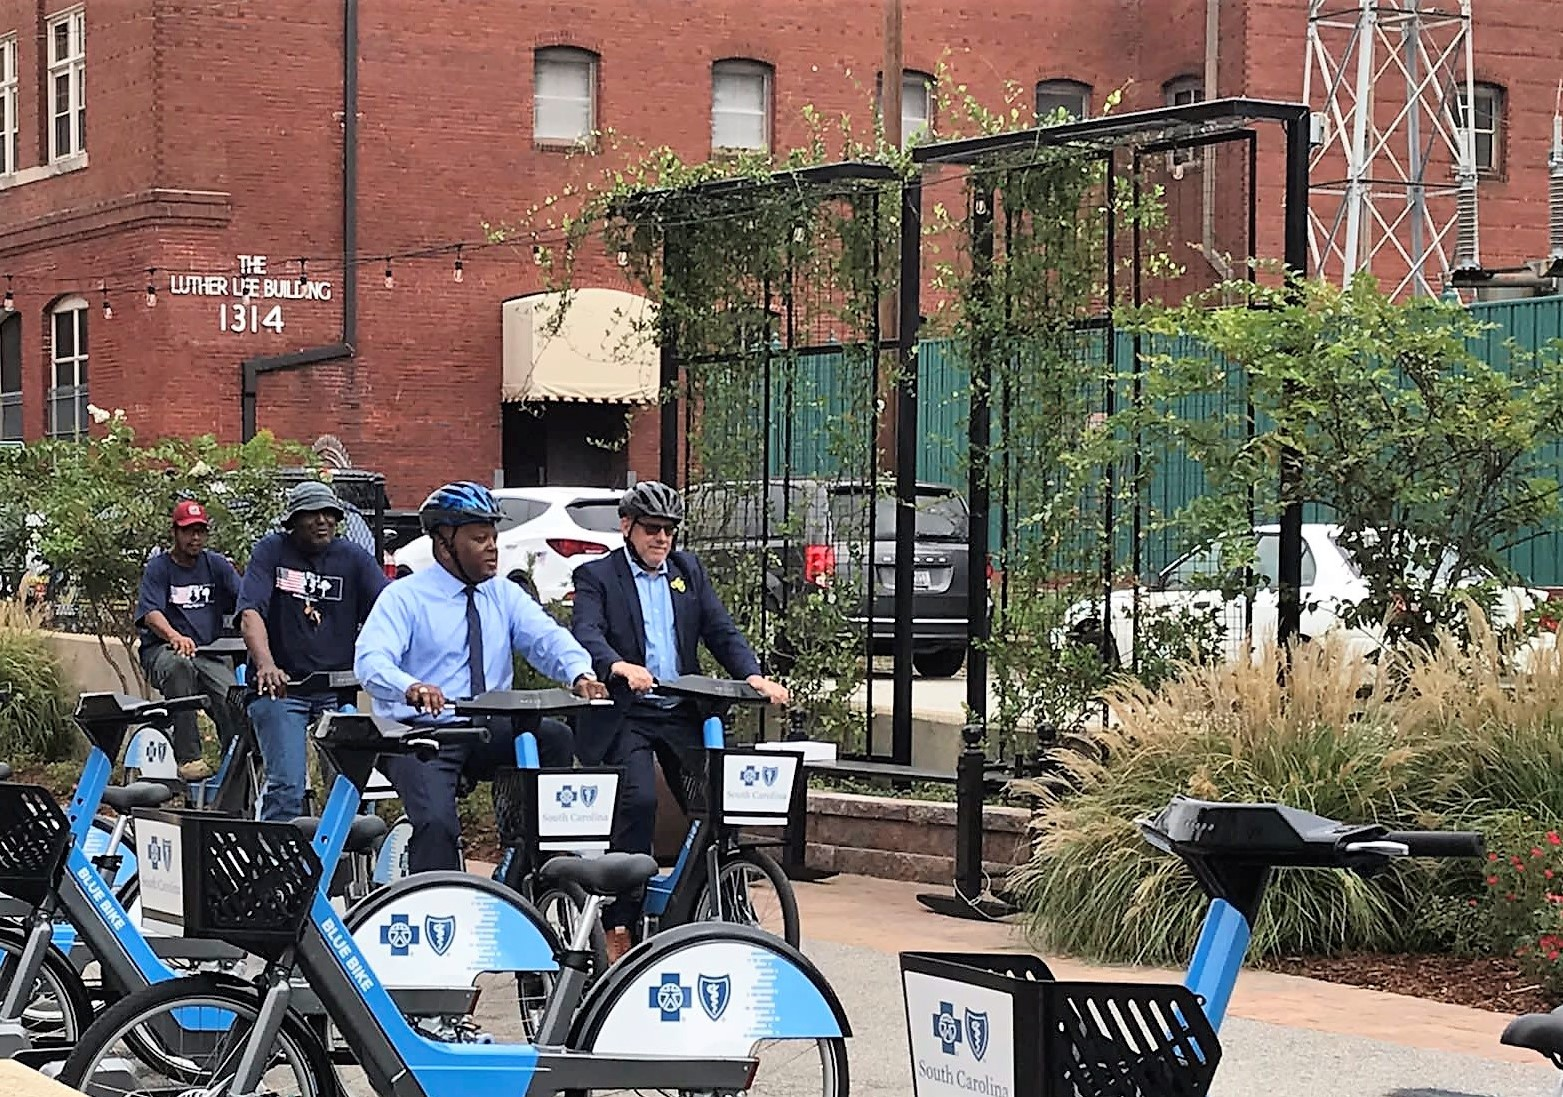 Columbia Mayor Steve Benjamin cycles to a news conference kicking off the city's new bike share program. (Photo/Provided)